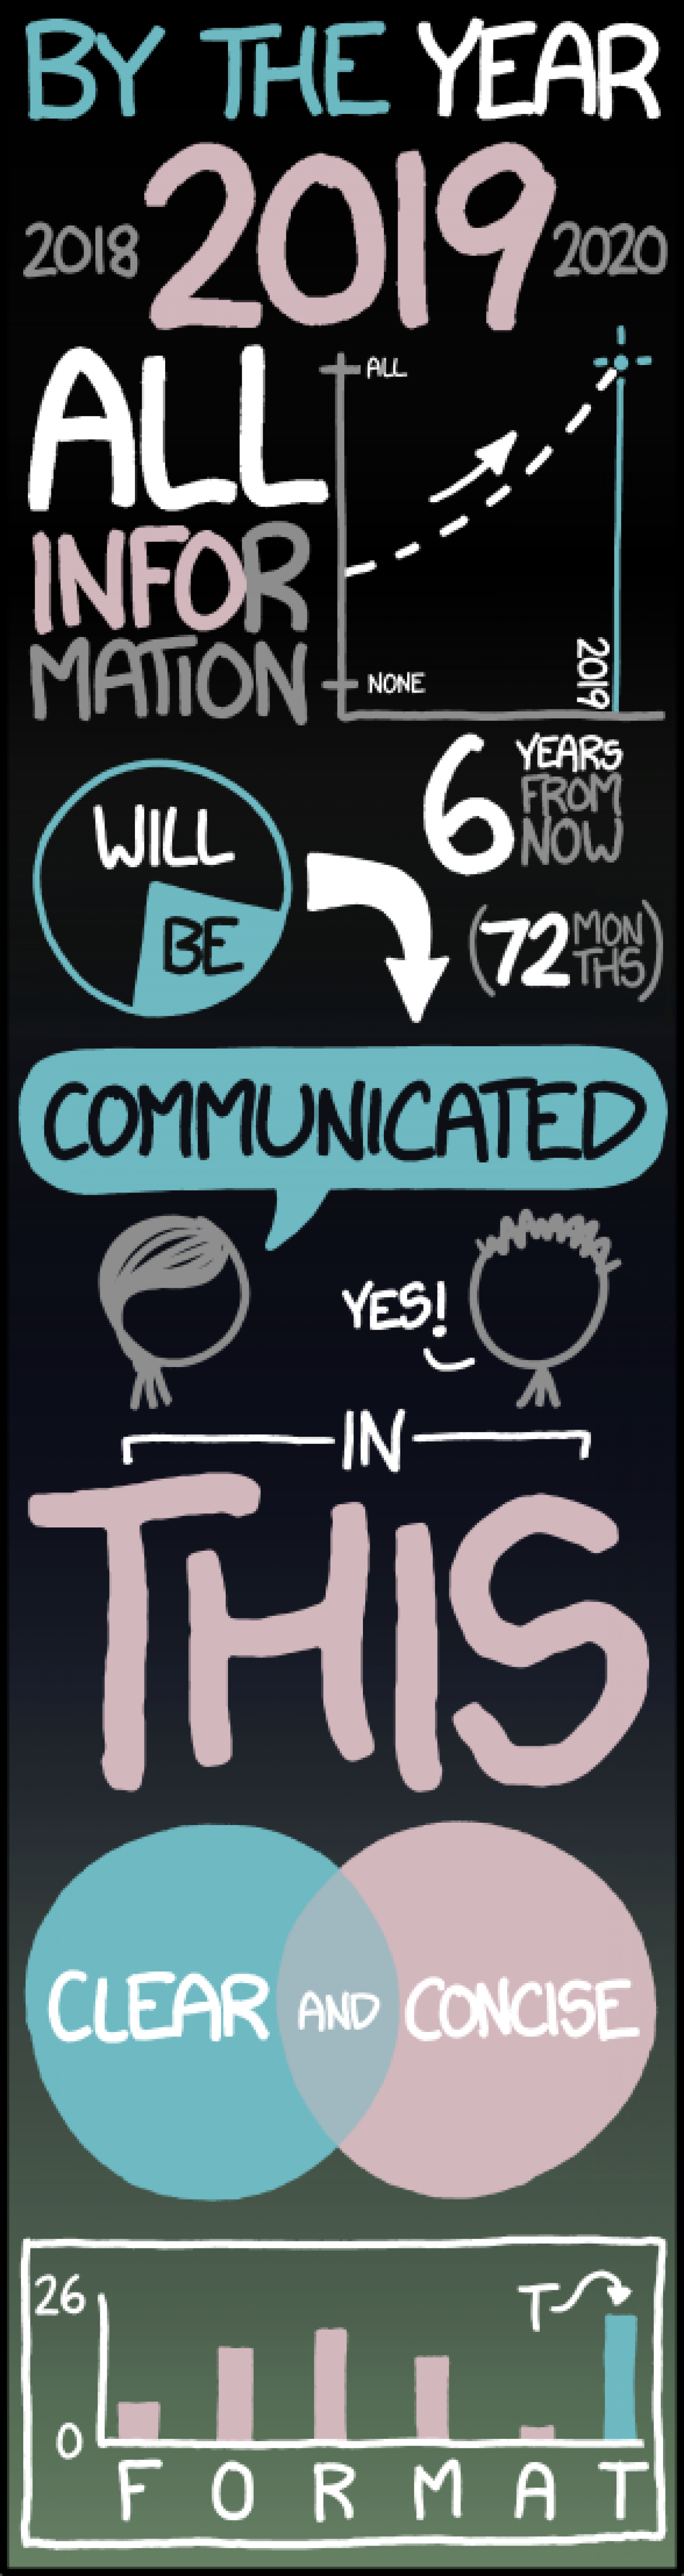 How All Information Will Be Communicated Infographic